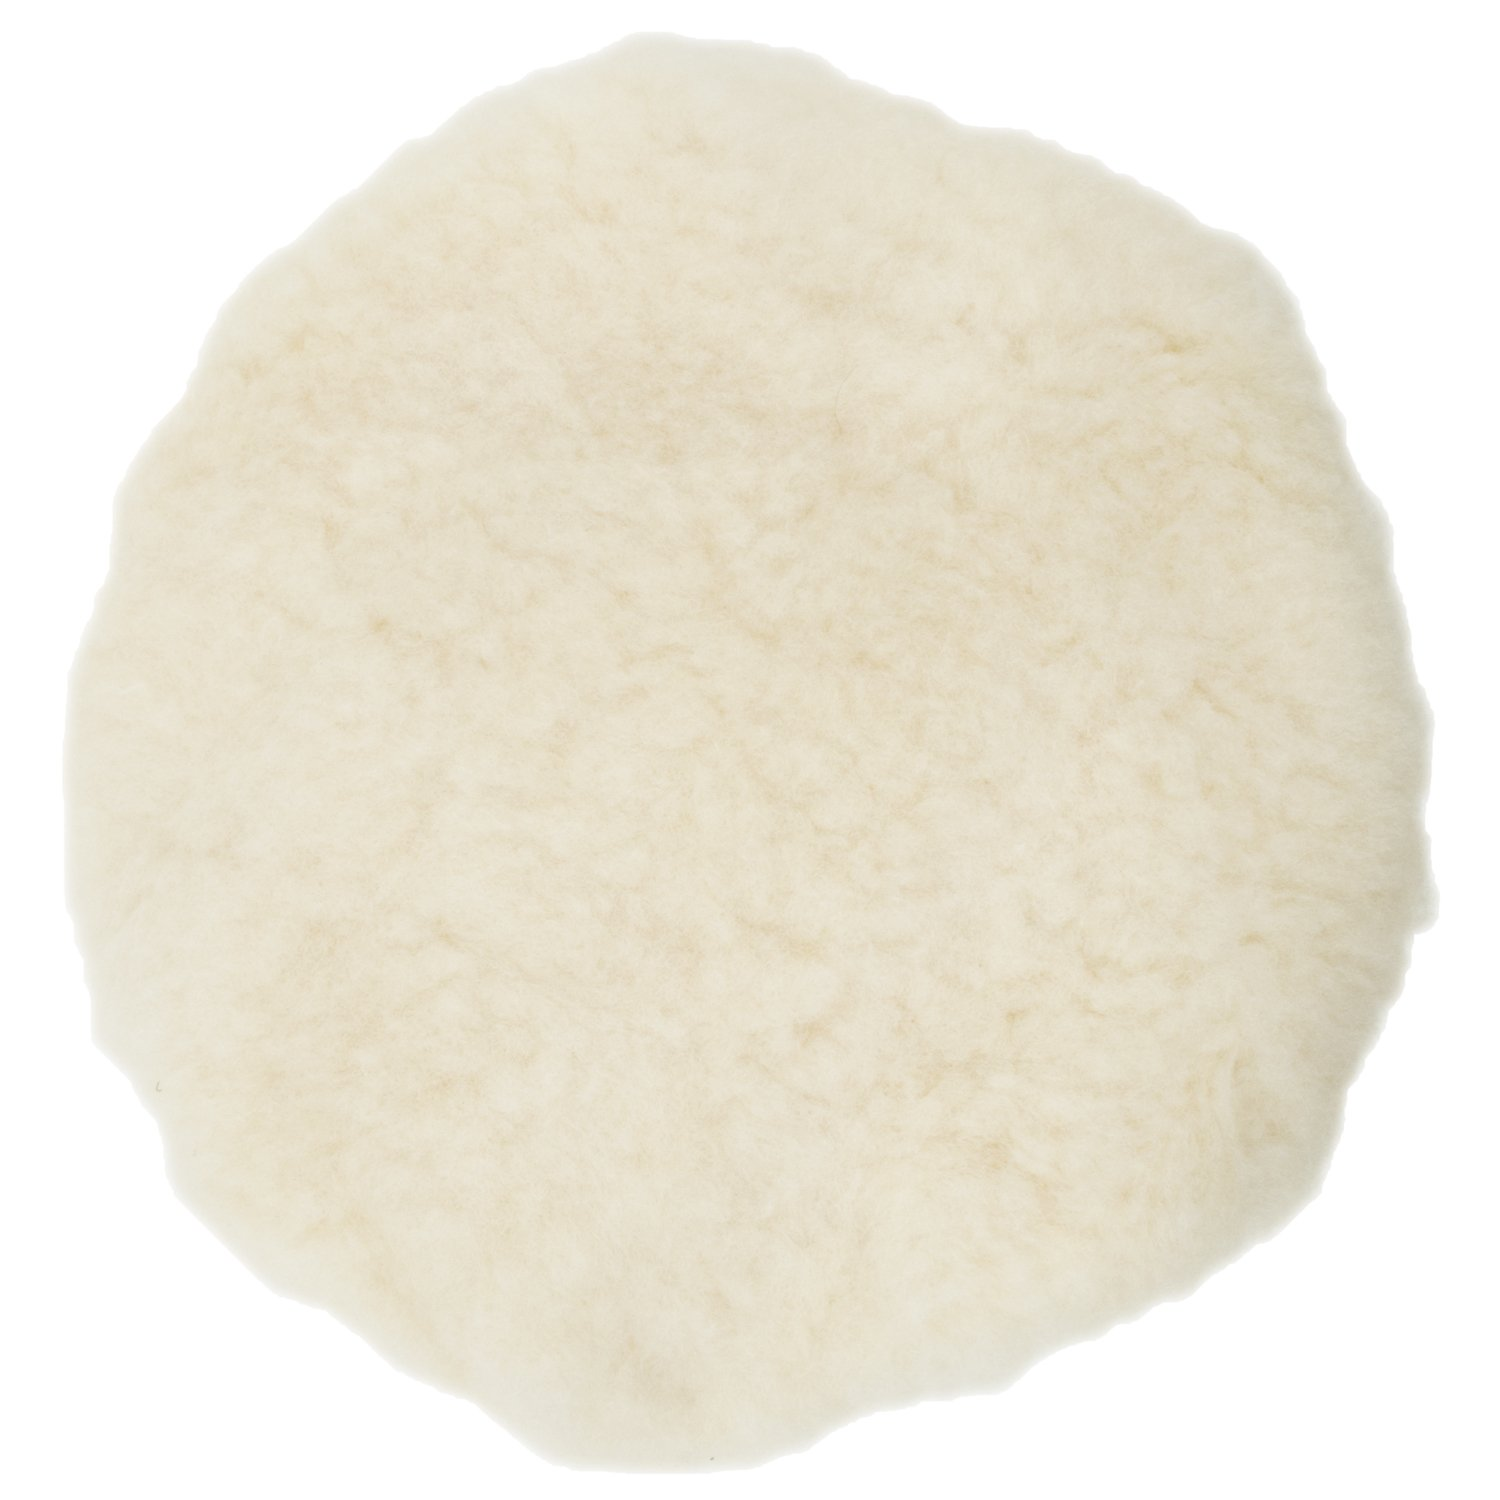 Detailers Choice 6-2910 9-10 Synthetic Wool Bonnet